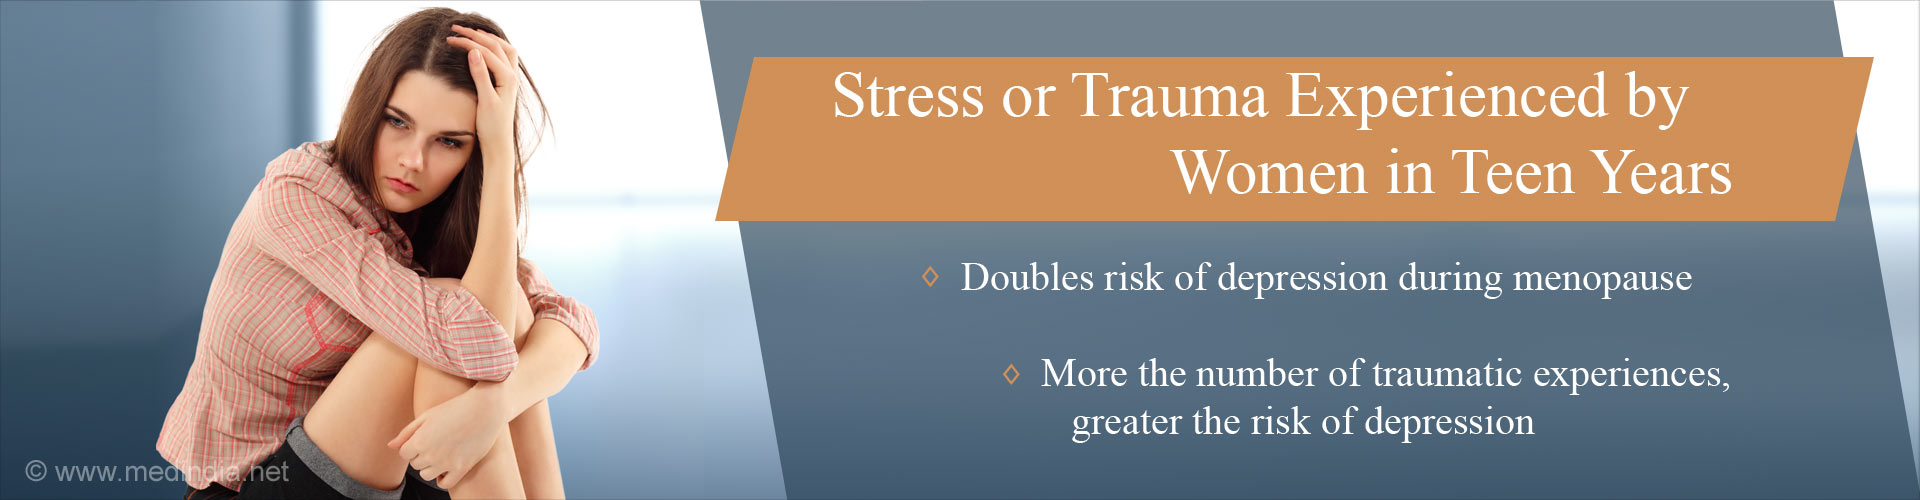 Stress or trauma experienced by women in teen years  - Double risk of depression during menopause - More the number of traumatic experiences, greater the risk of depression